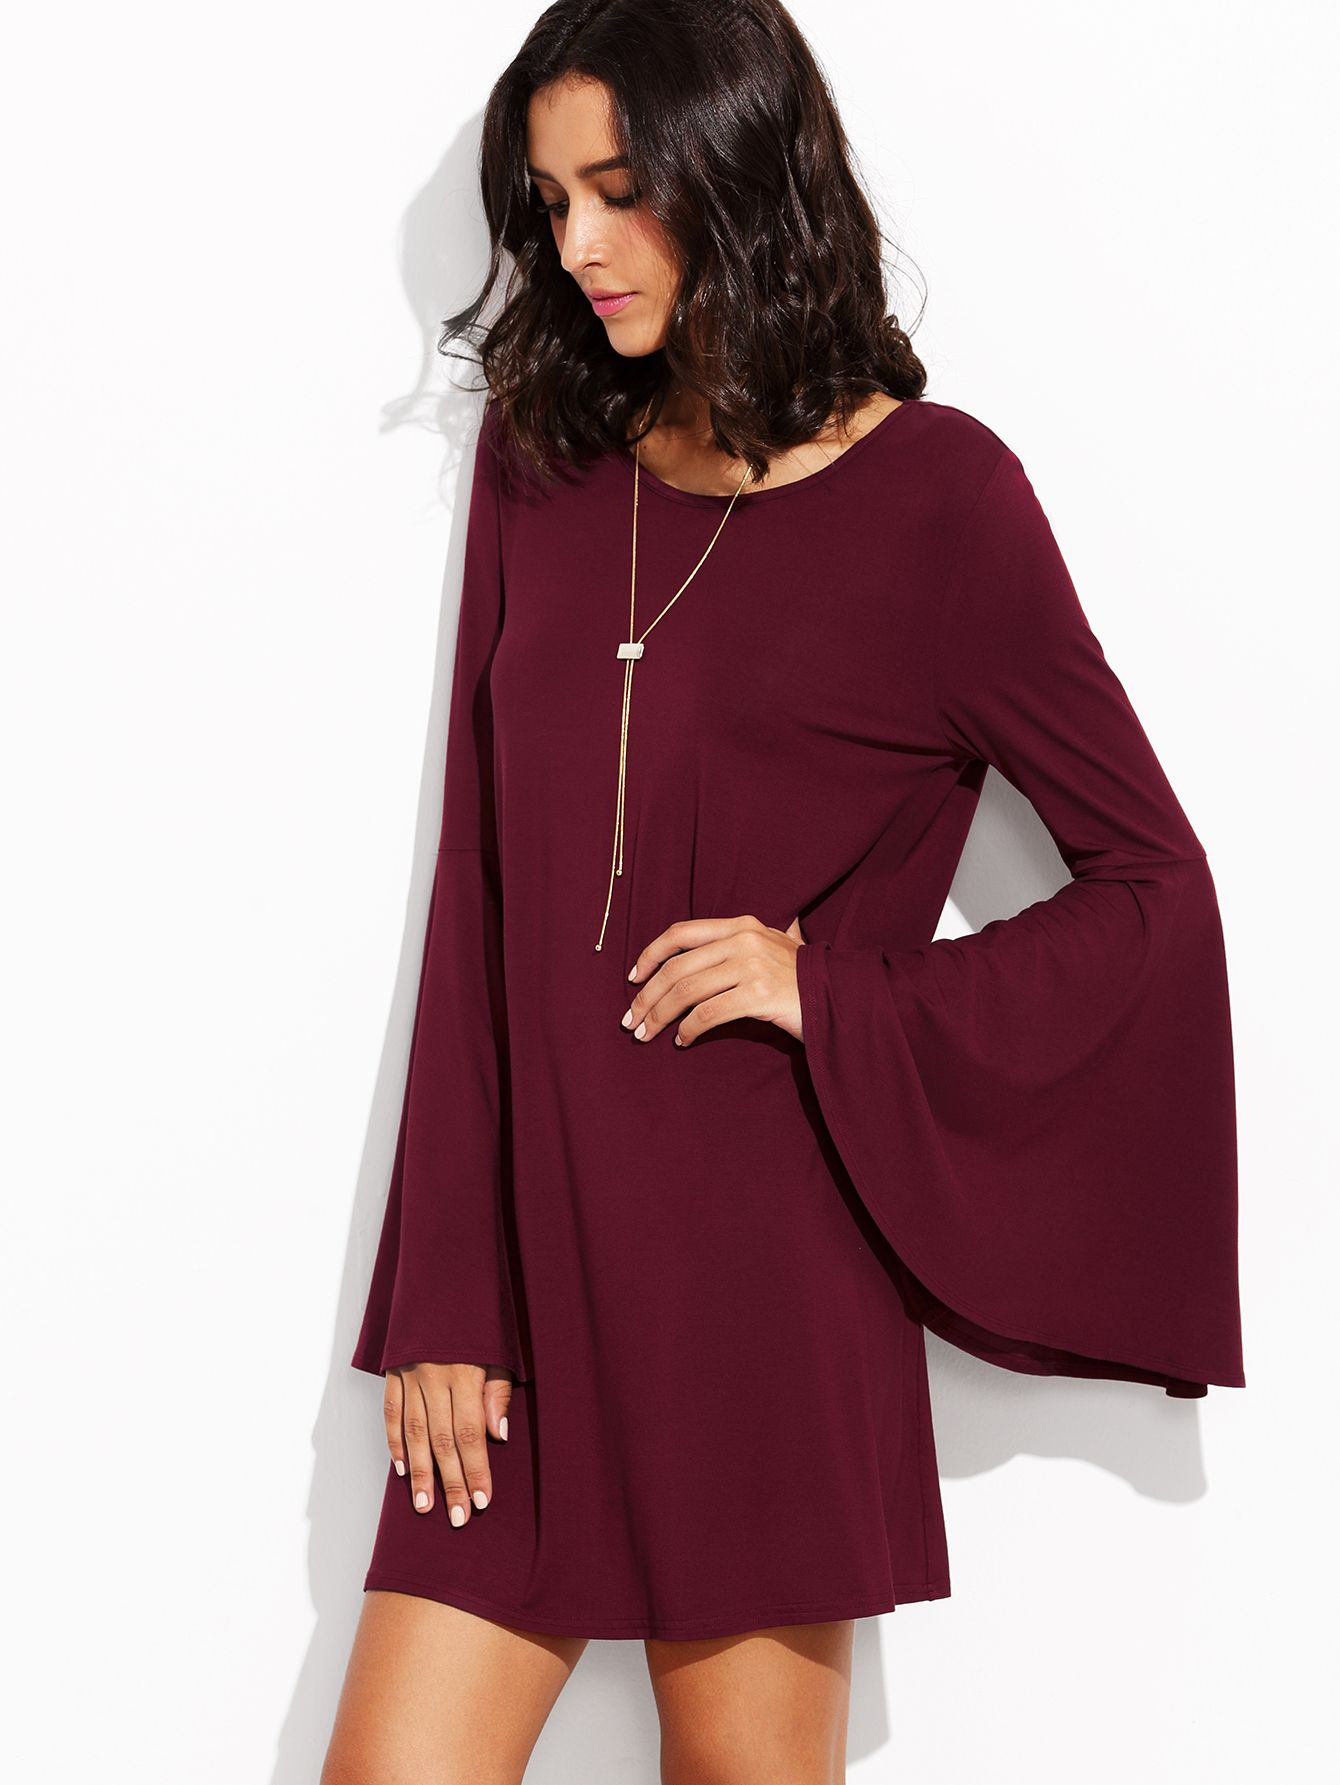 a1548f9d3ede Shop Burgundy Bell Sleeve Shift Dress online. SheIn offers Burgundy Bell  Sleeve Shift Dress   more to fit your fashionable needs.